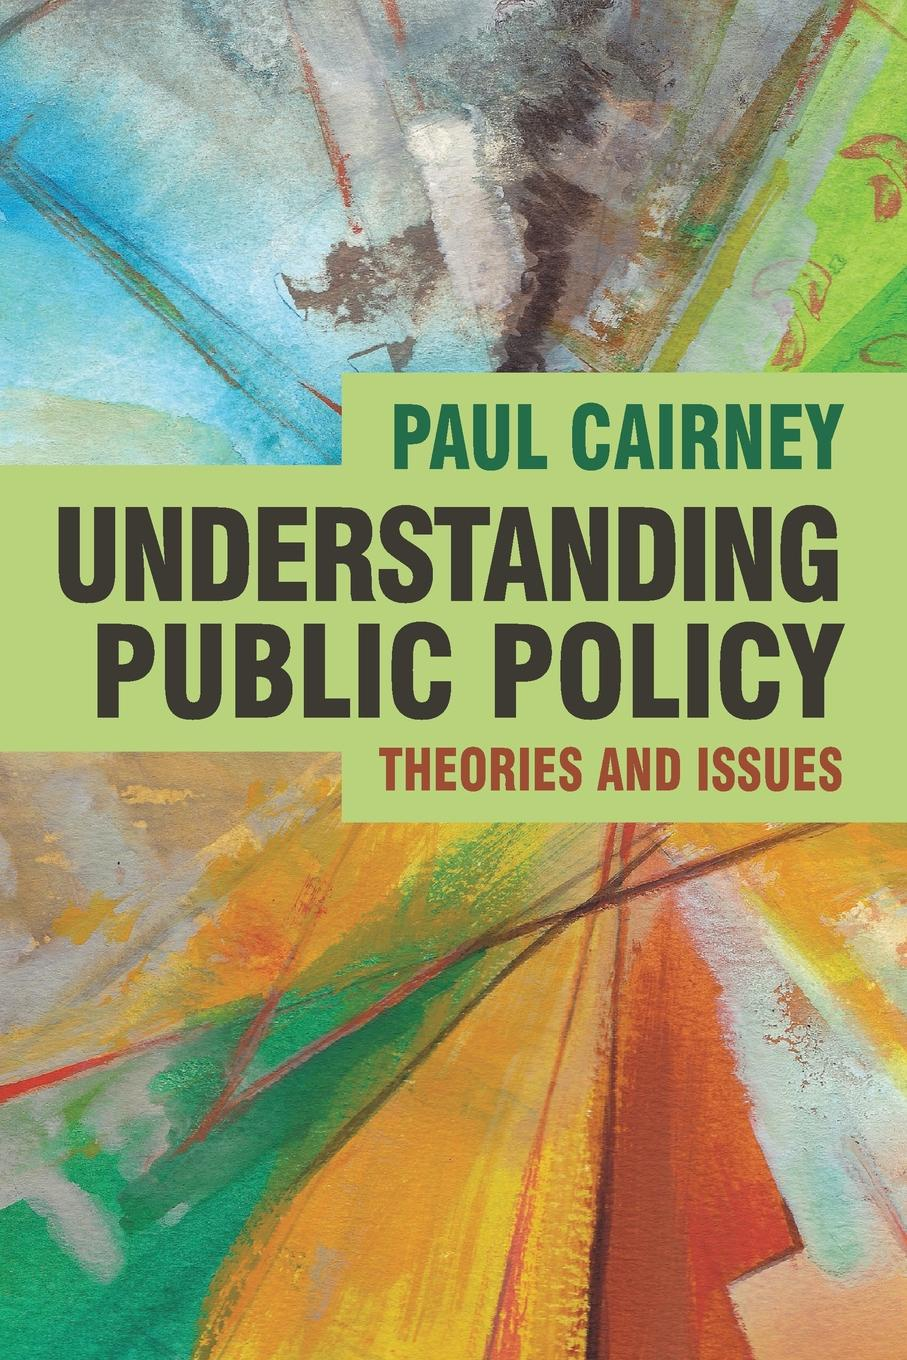 Paul Cairney Understanding Public Policy. Theories and Issues dhrubajyoti bhattacharya public health policy issues theories and advocacy